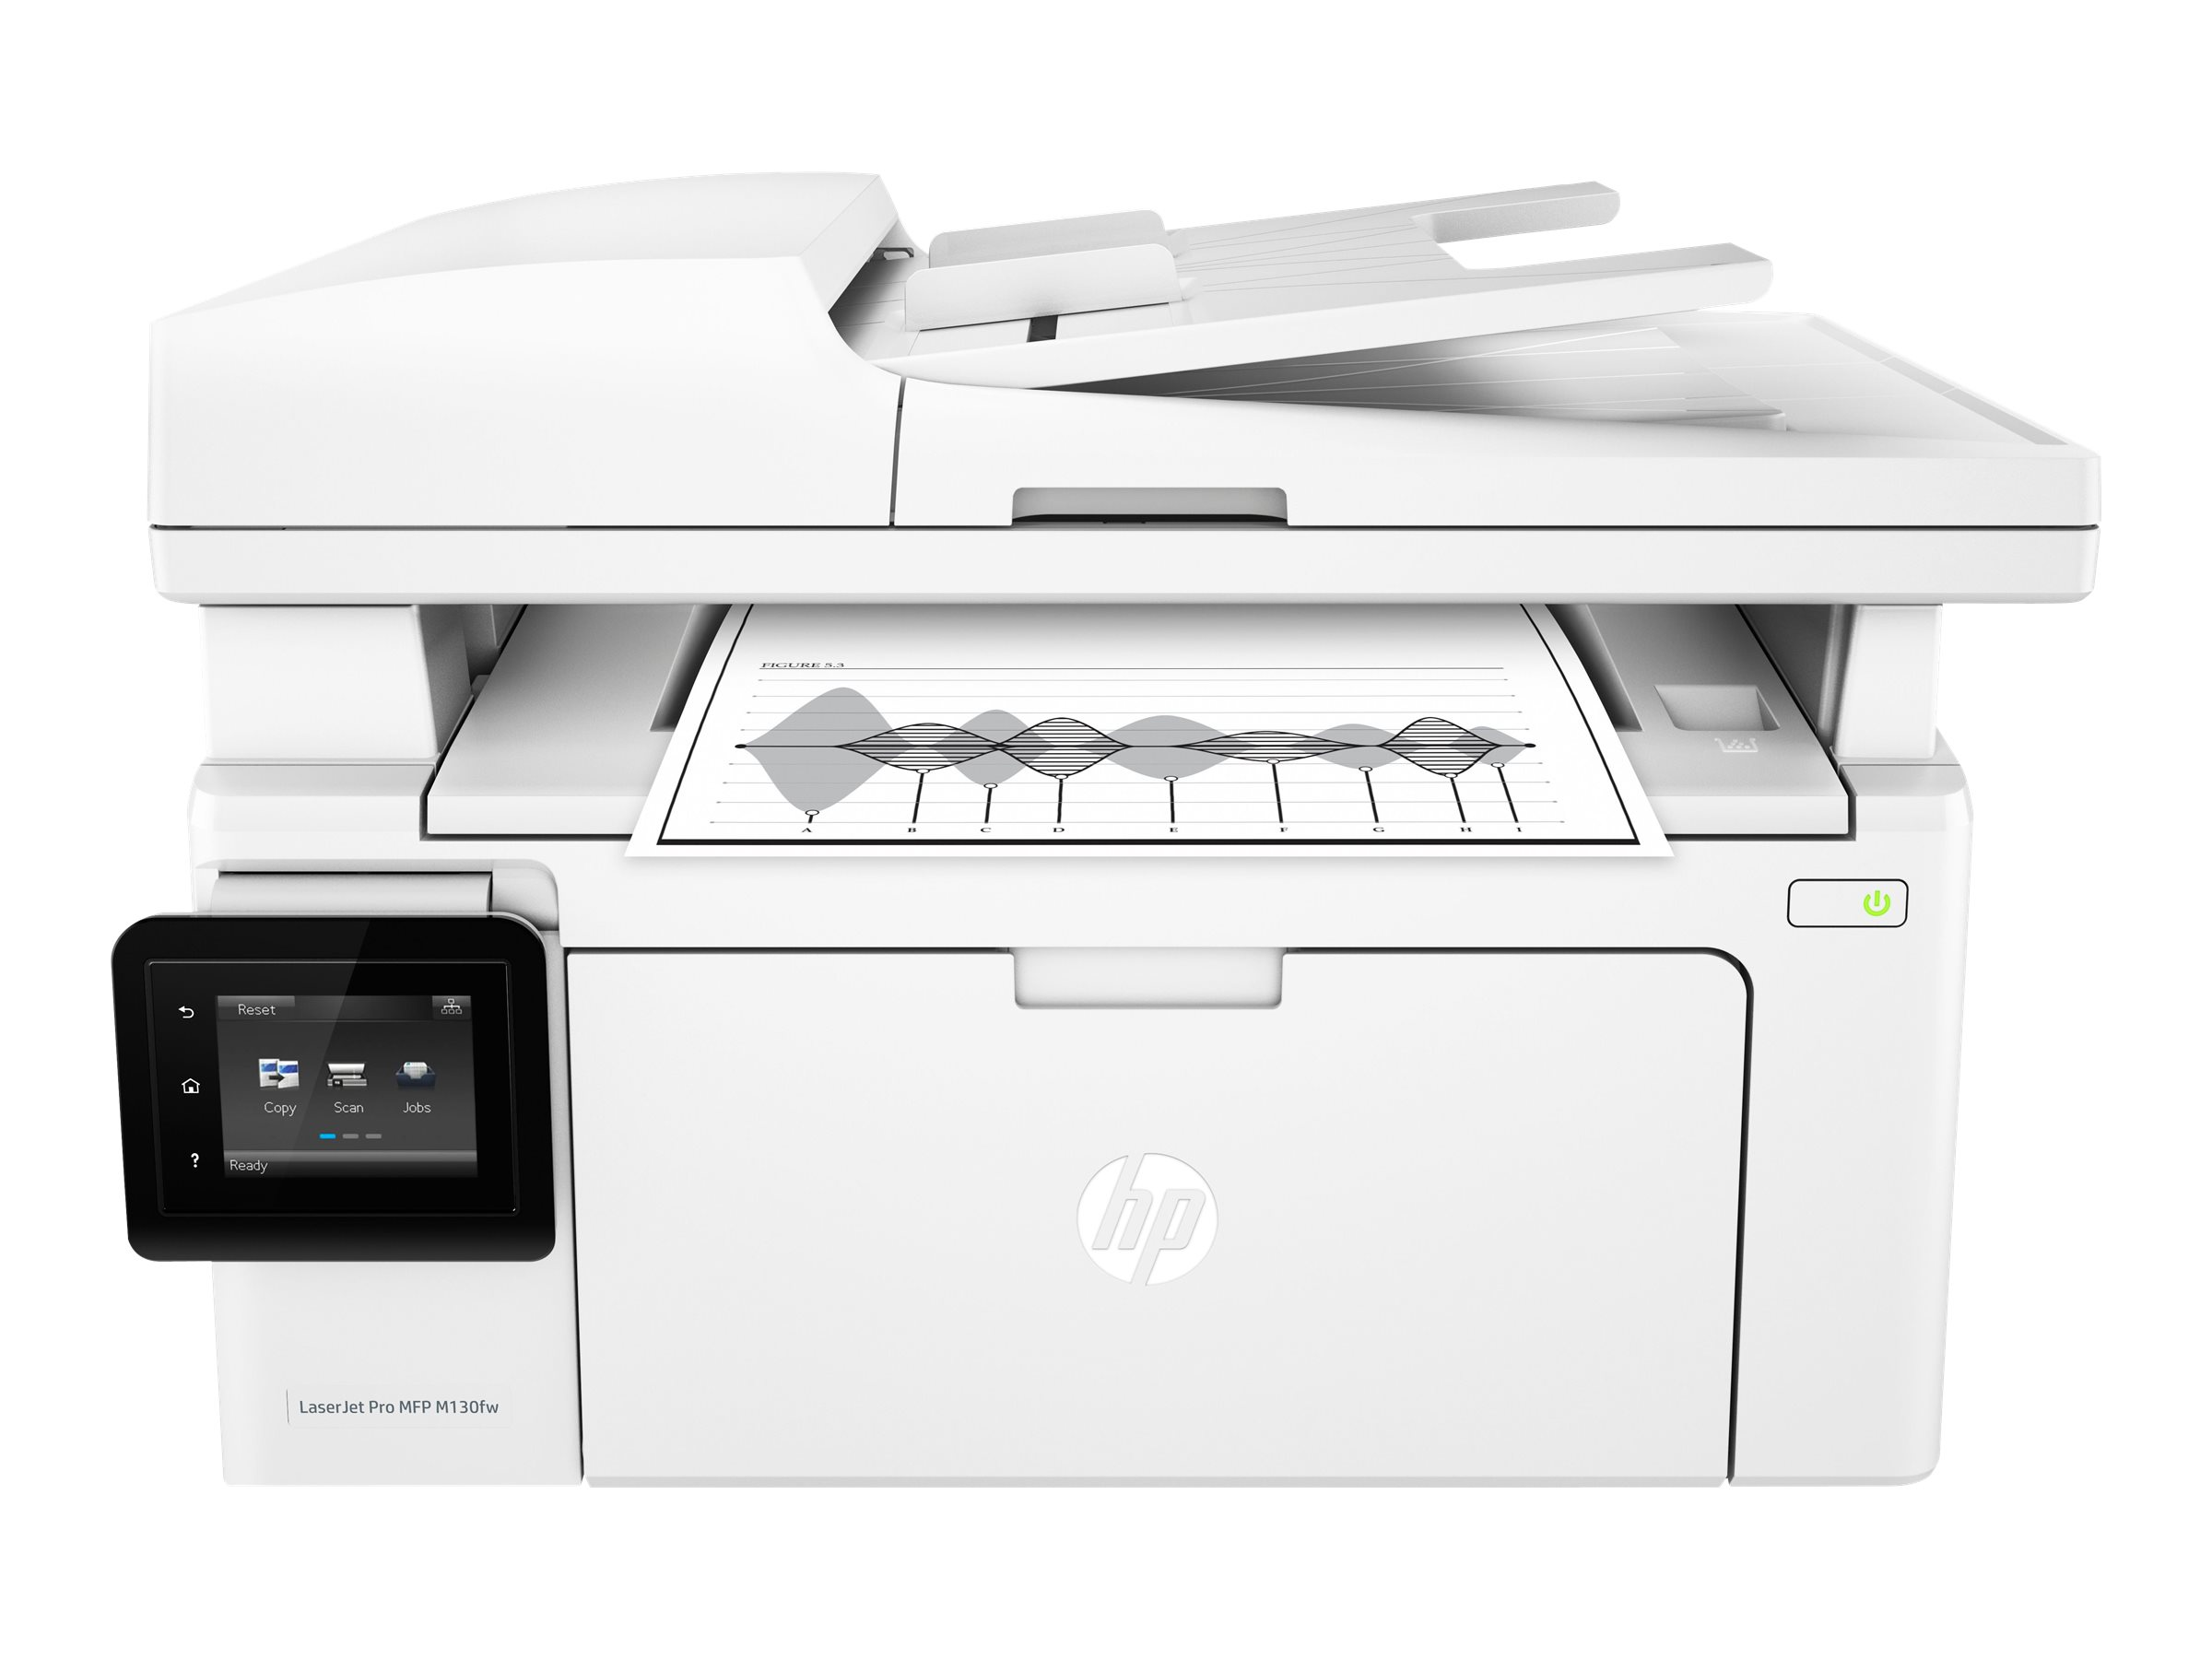 Image for Hp Laserjet Pro Mfp M130Fw - Multifunction Printer (B/W) from Circuit City